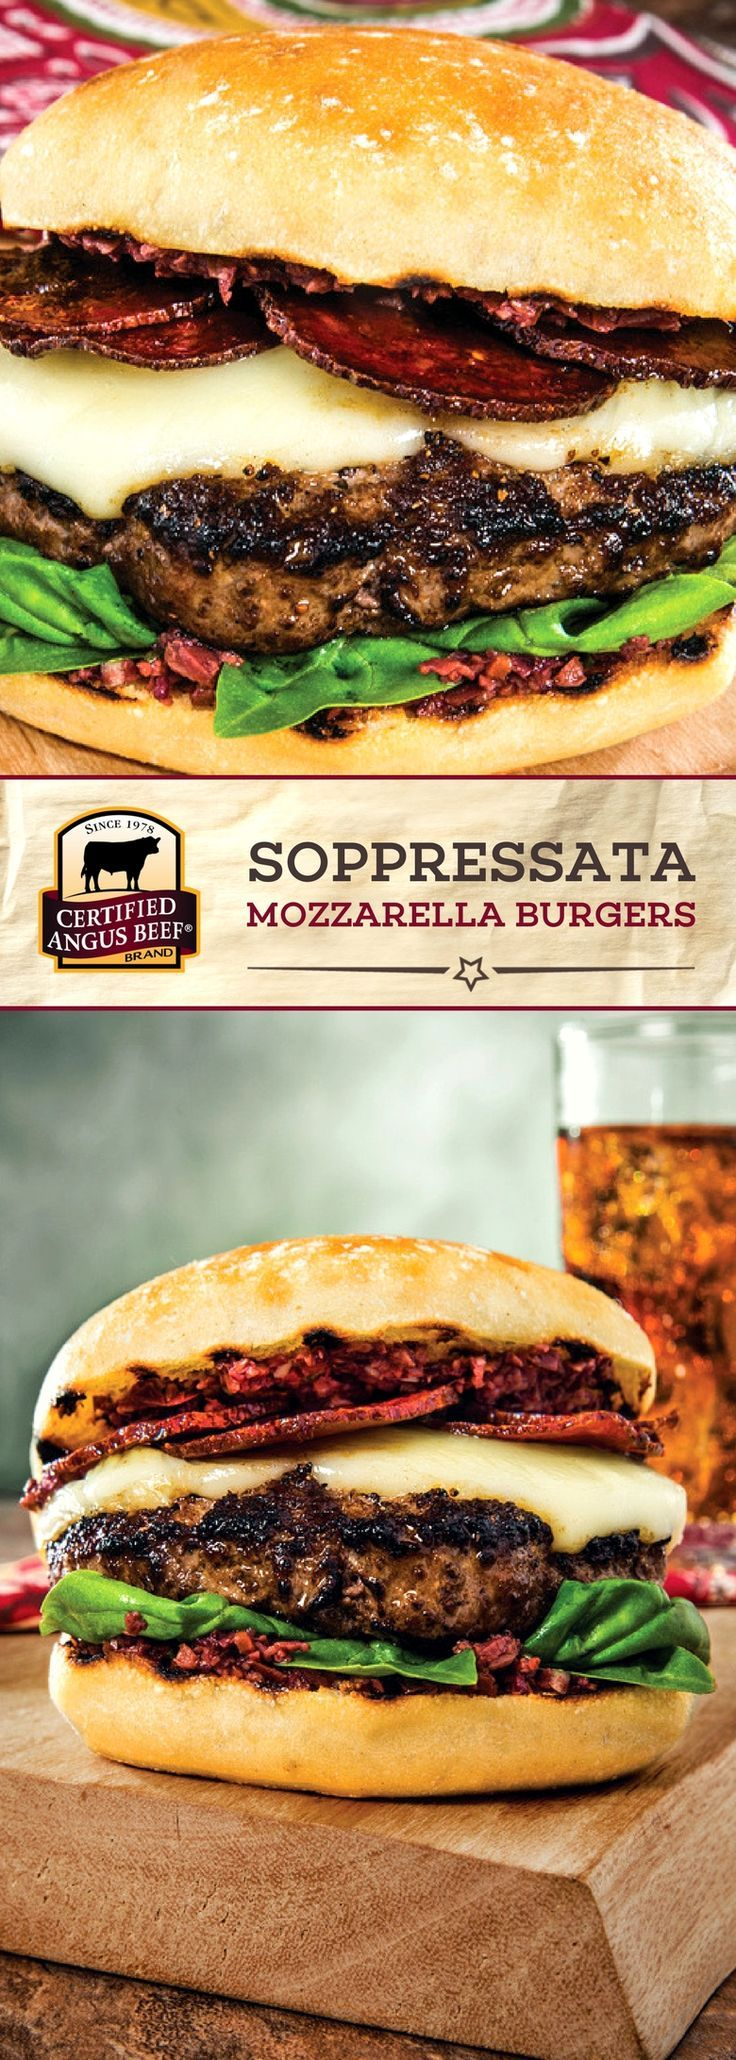 Certified Angus Beef®️️️ brand Soppressata Mozzarella Burgers are a real treat! The BEST, perfectly seasoned ground chuck is topped with mozzarella, thinly sliced soppressata, and Kalamata olives for a DELICIOUS burger recipe! #bestangusbeef #certifiedangusbeef #beefrecipe #burgerrecipe